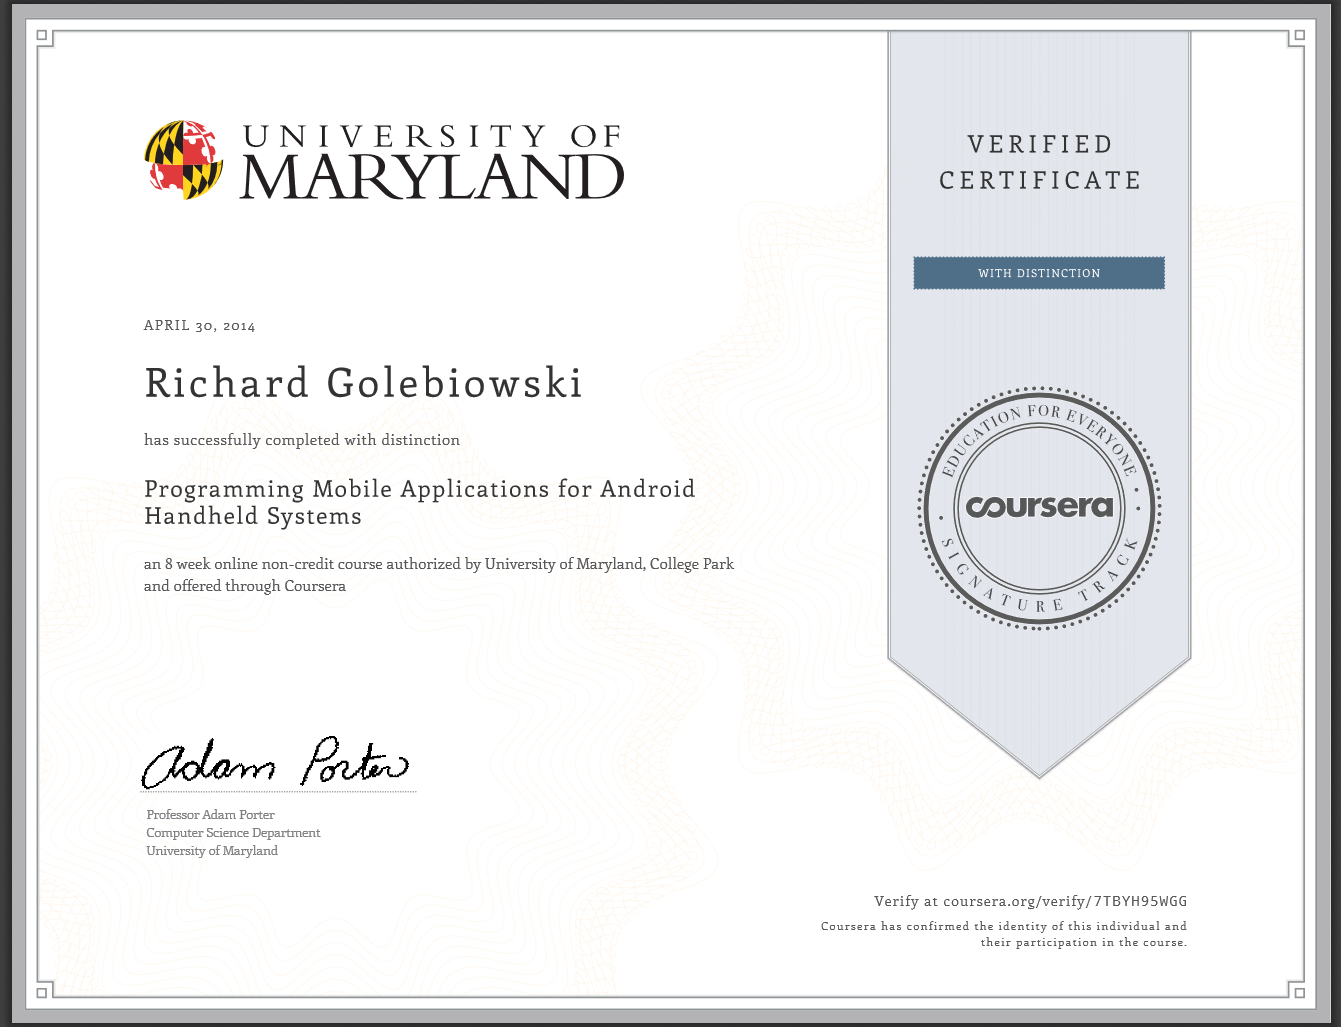 Richard Golebiowski Received Coursera Certificate For Programming